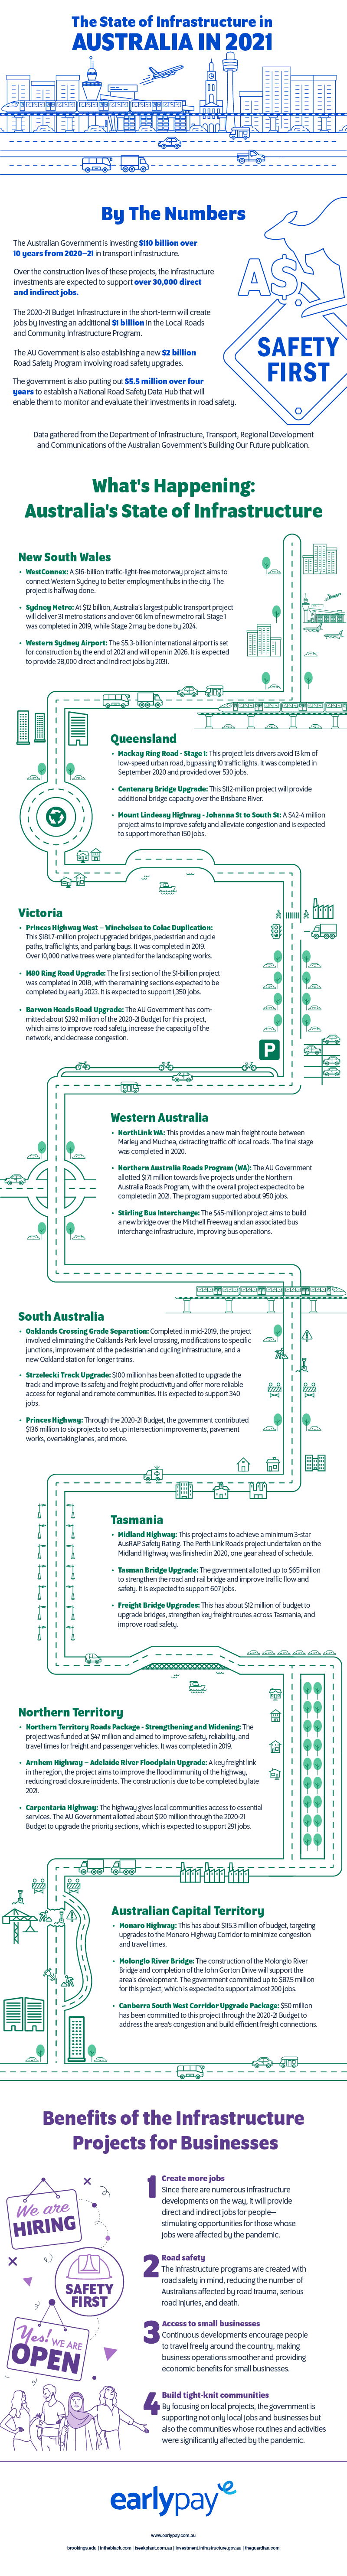 The State of Infrastructure in Australia in 2021